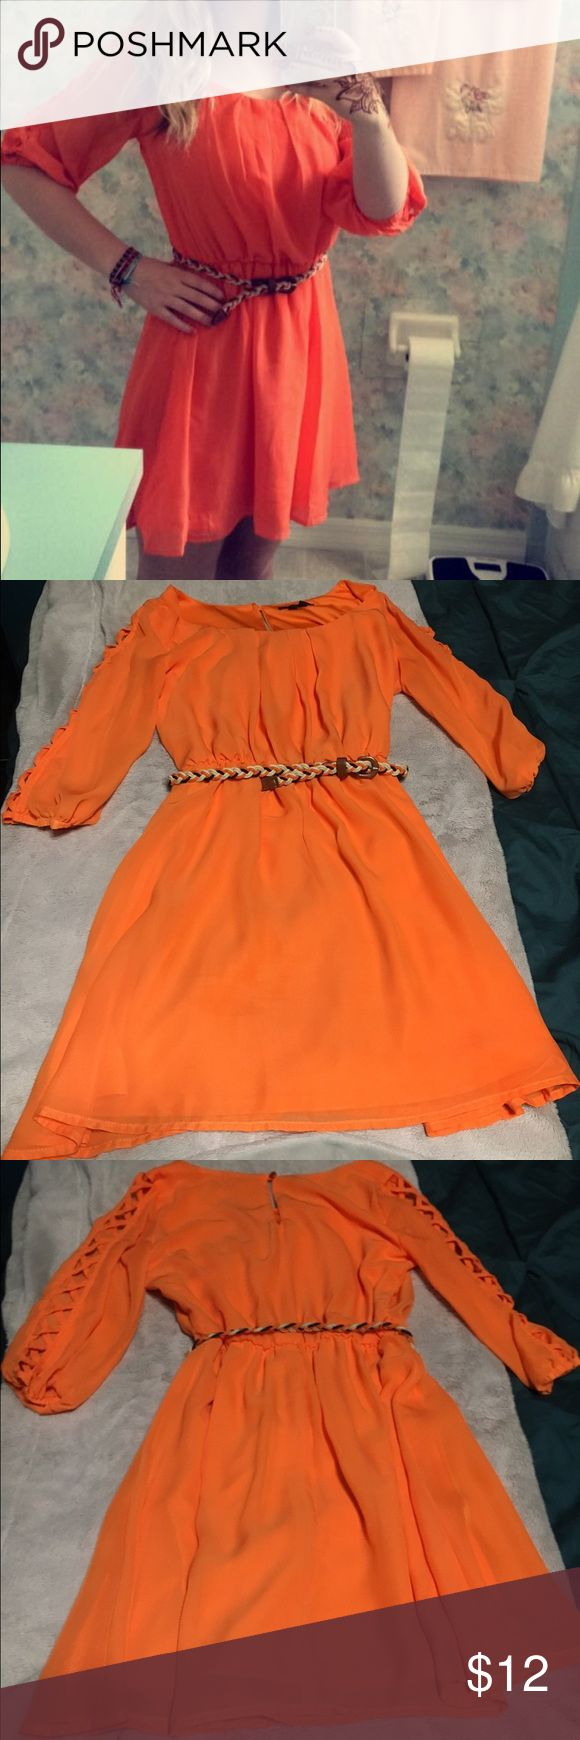 Orange summer dress bright orange summer dress, worn once for dinner in Florida. Very comfy and cute for summer. Dresses Long Sleeve